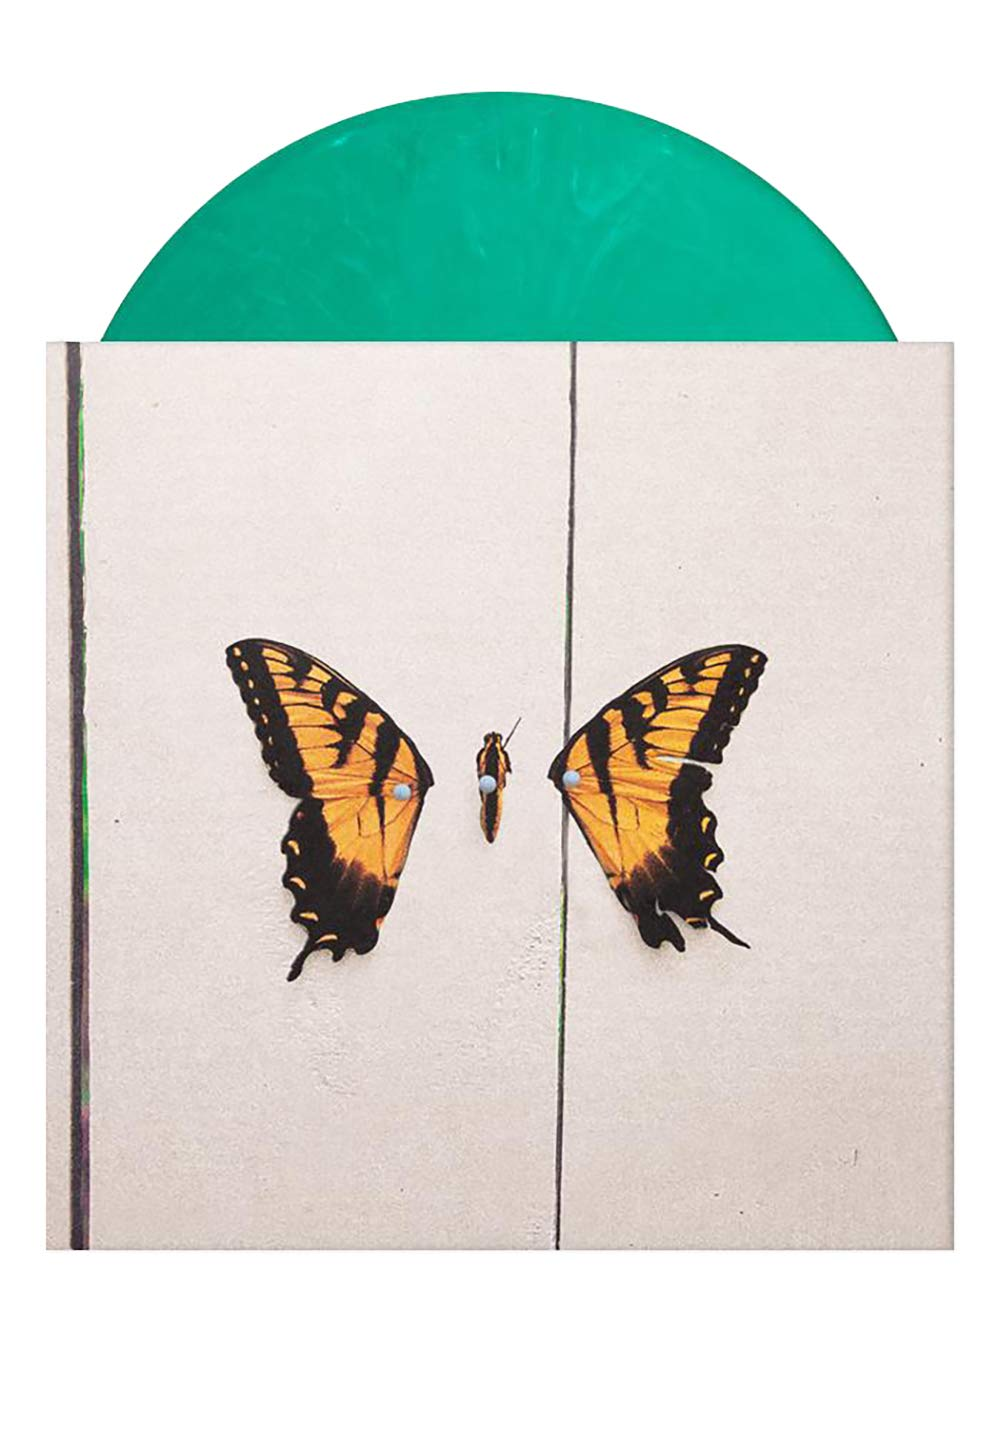 Brand New Eyes - Exclusive Limited Edition Green Smoke Vinyl LP by Ramen